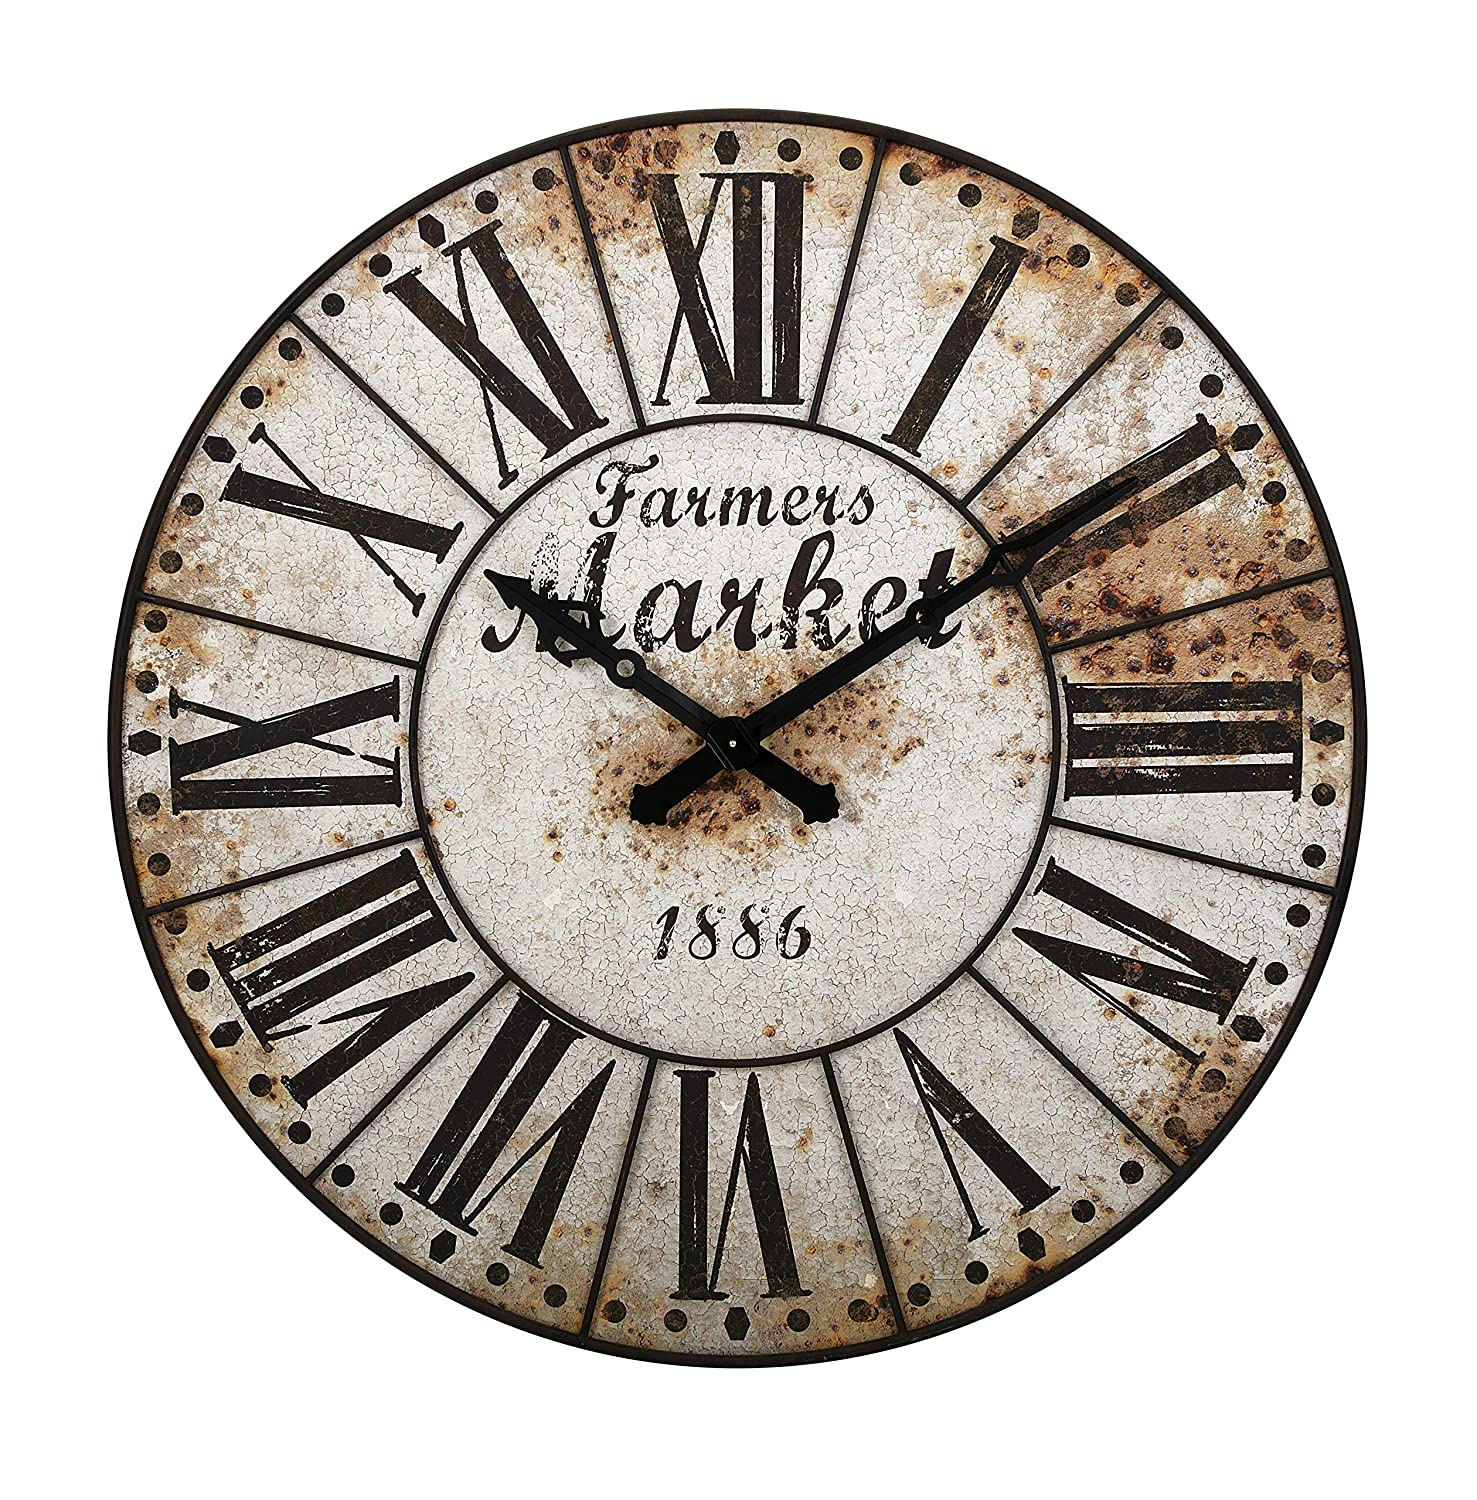 Amazon imax 18324 farmers market oversized wall clock home amazon imax 18324 farmers market oversized wall clock home kitchen amipublicfo Images